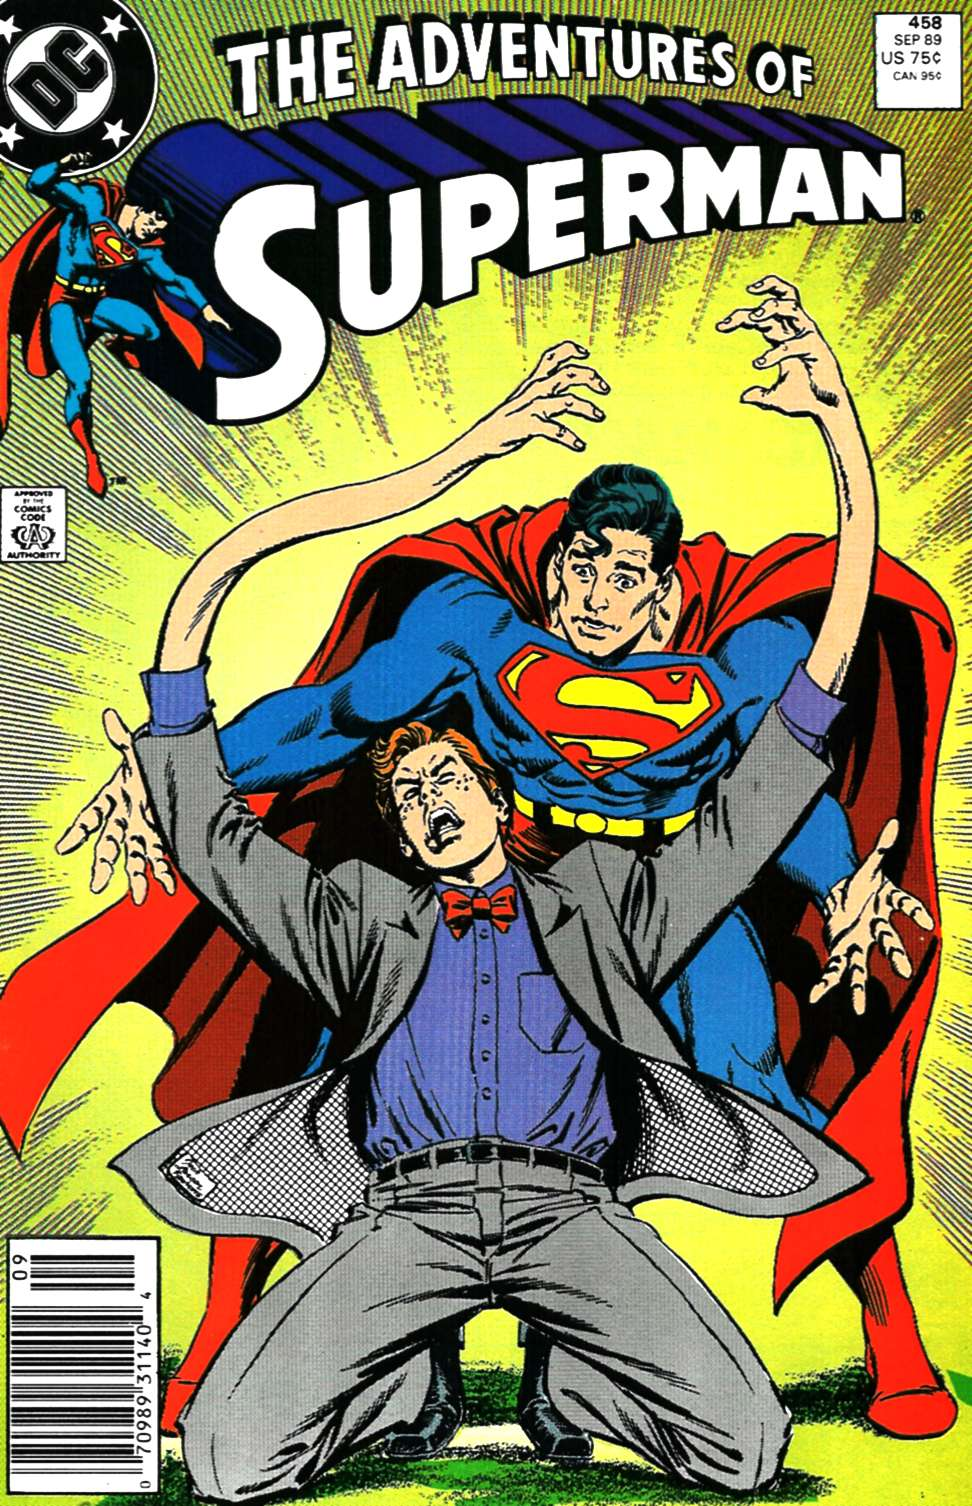 Adventures of Superman (1987) 458 Page 1